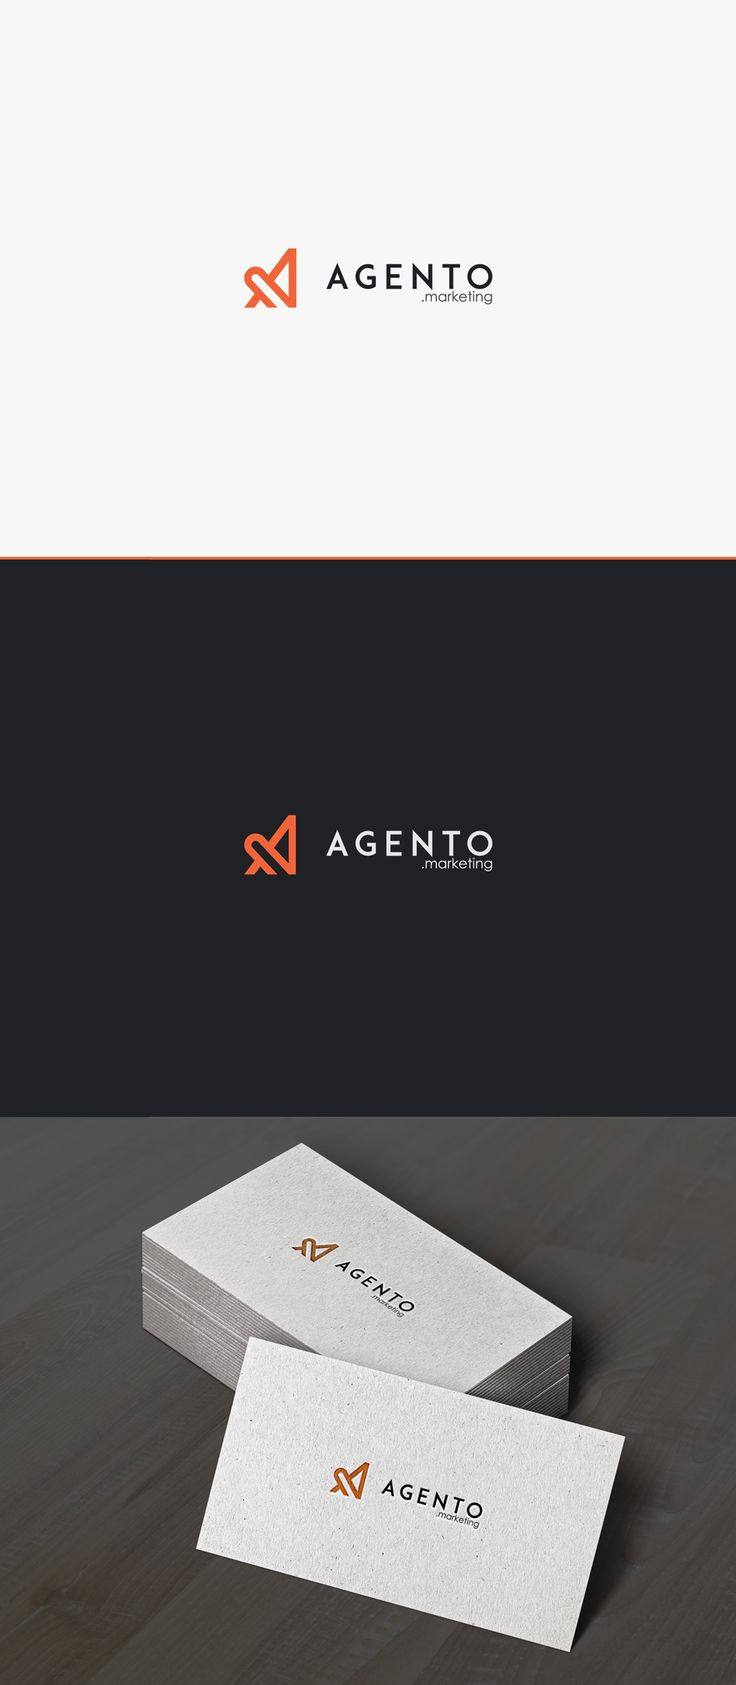 simple, sophisticated and modern logo for Agento.marketing | 99designs